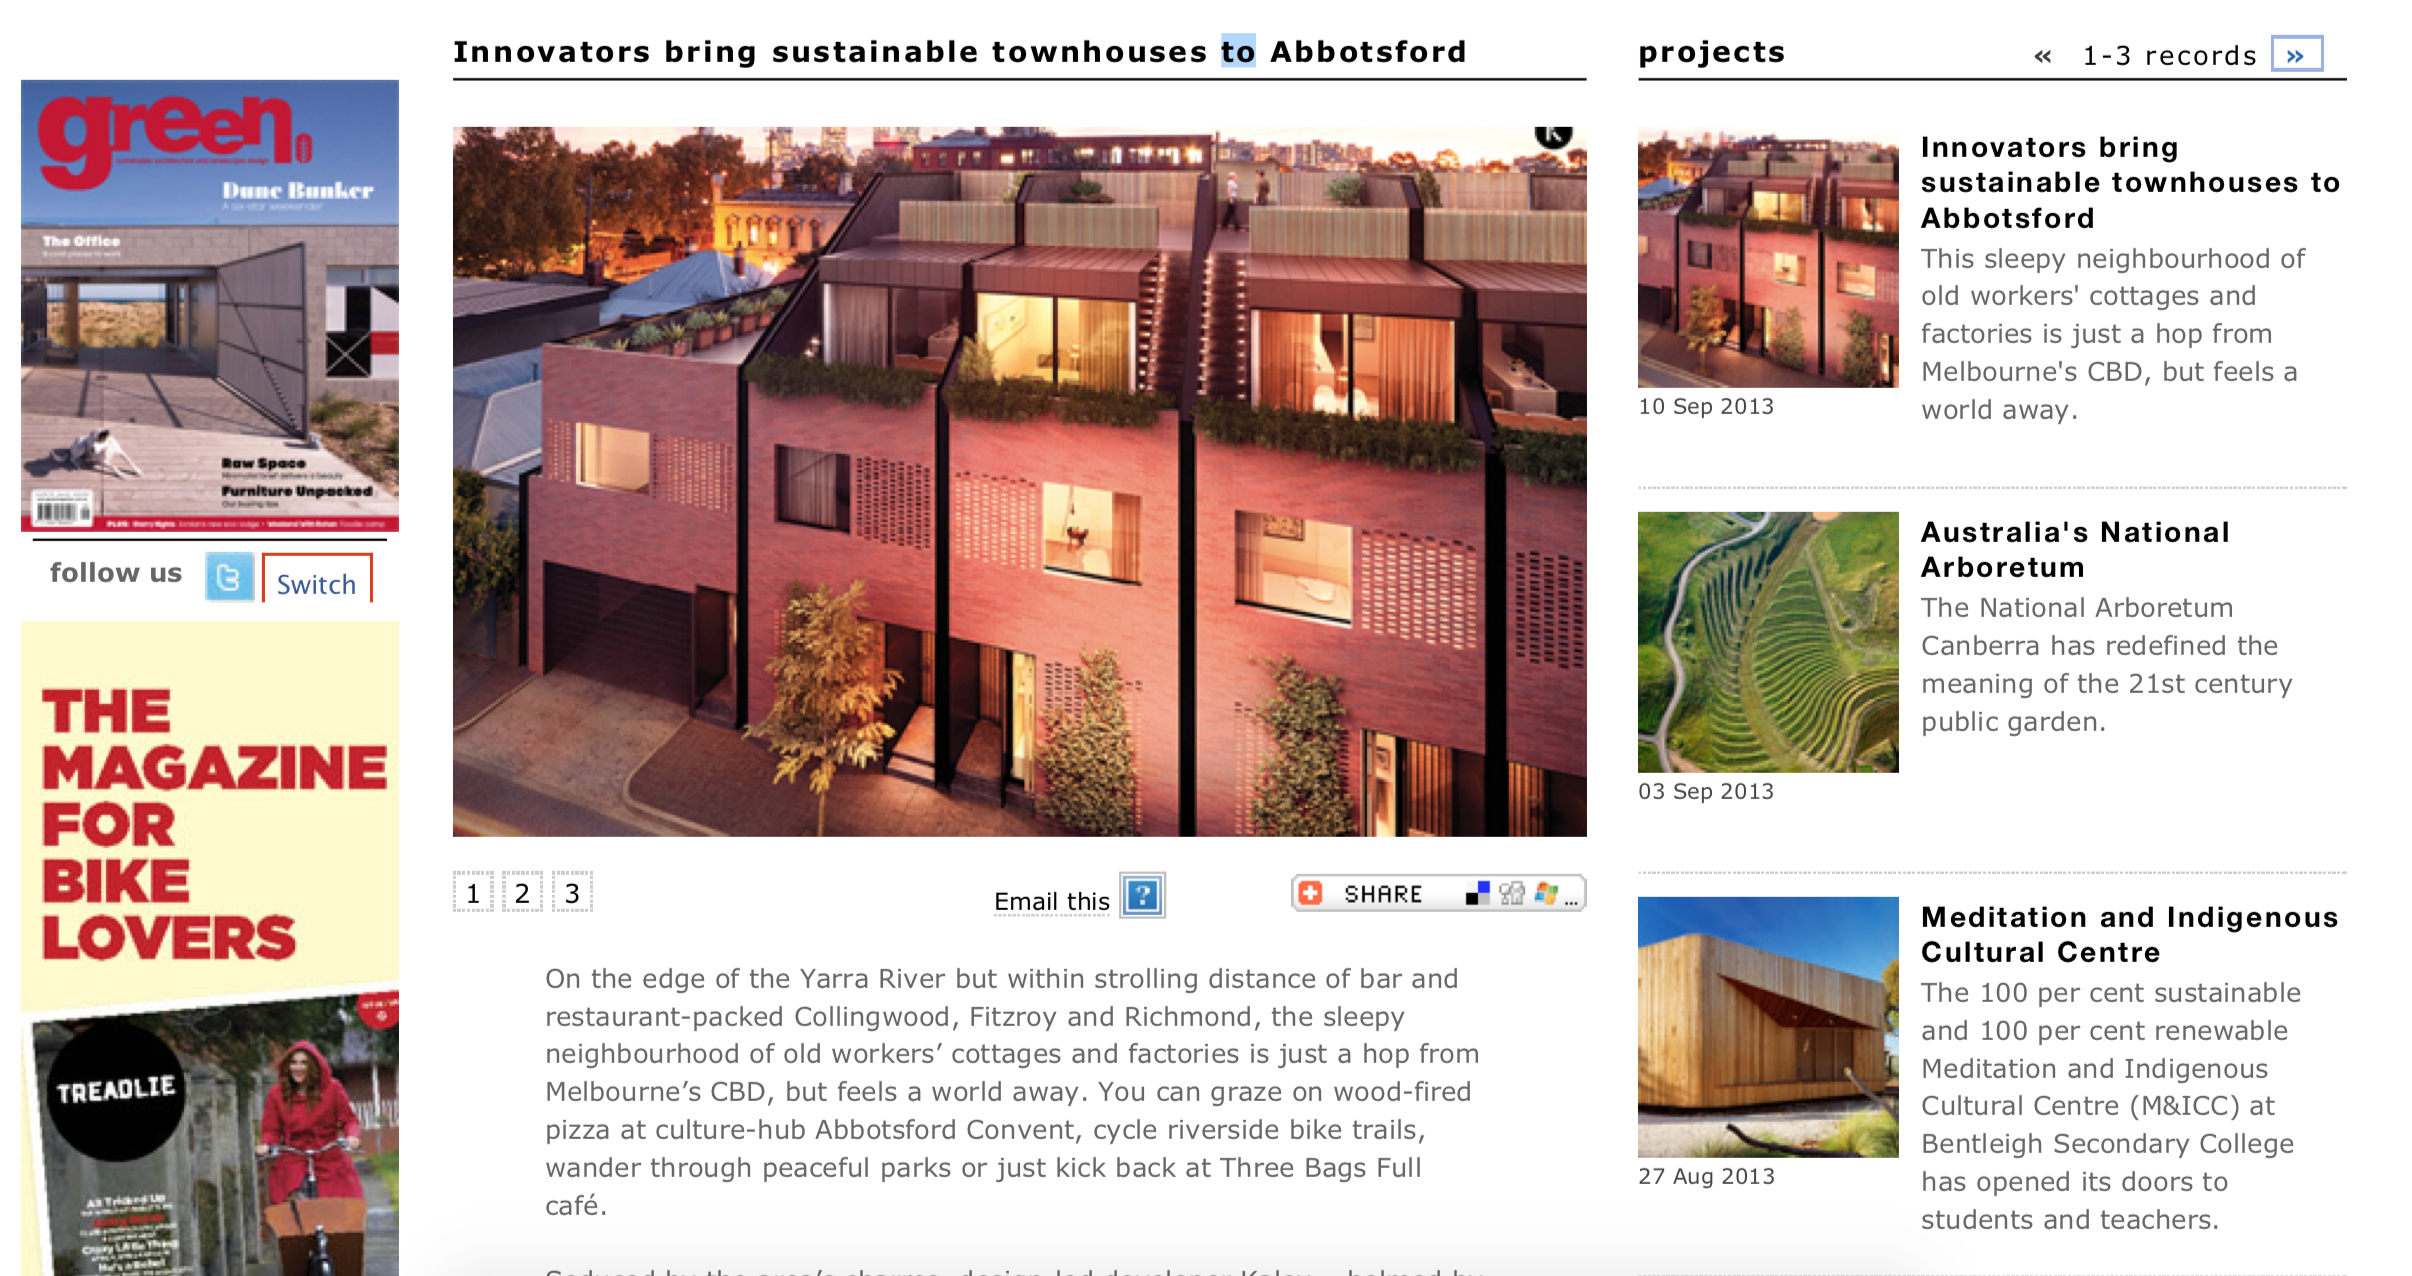 Green Magazine – Innovators bring sustainable townhouses to Abbotsford